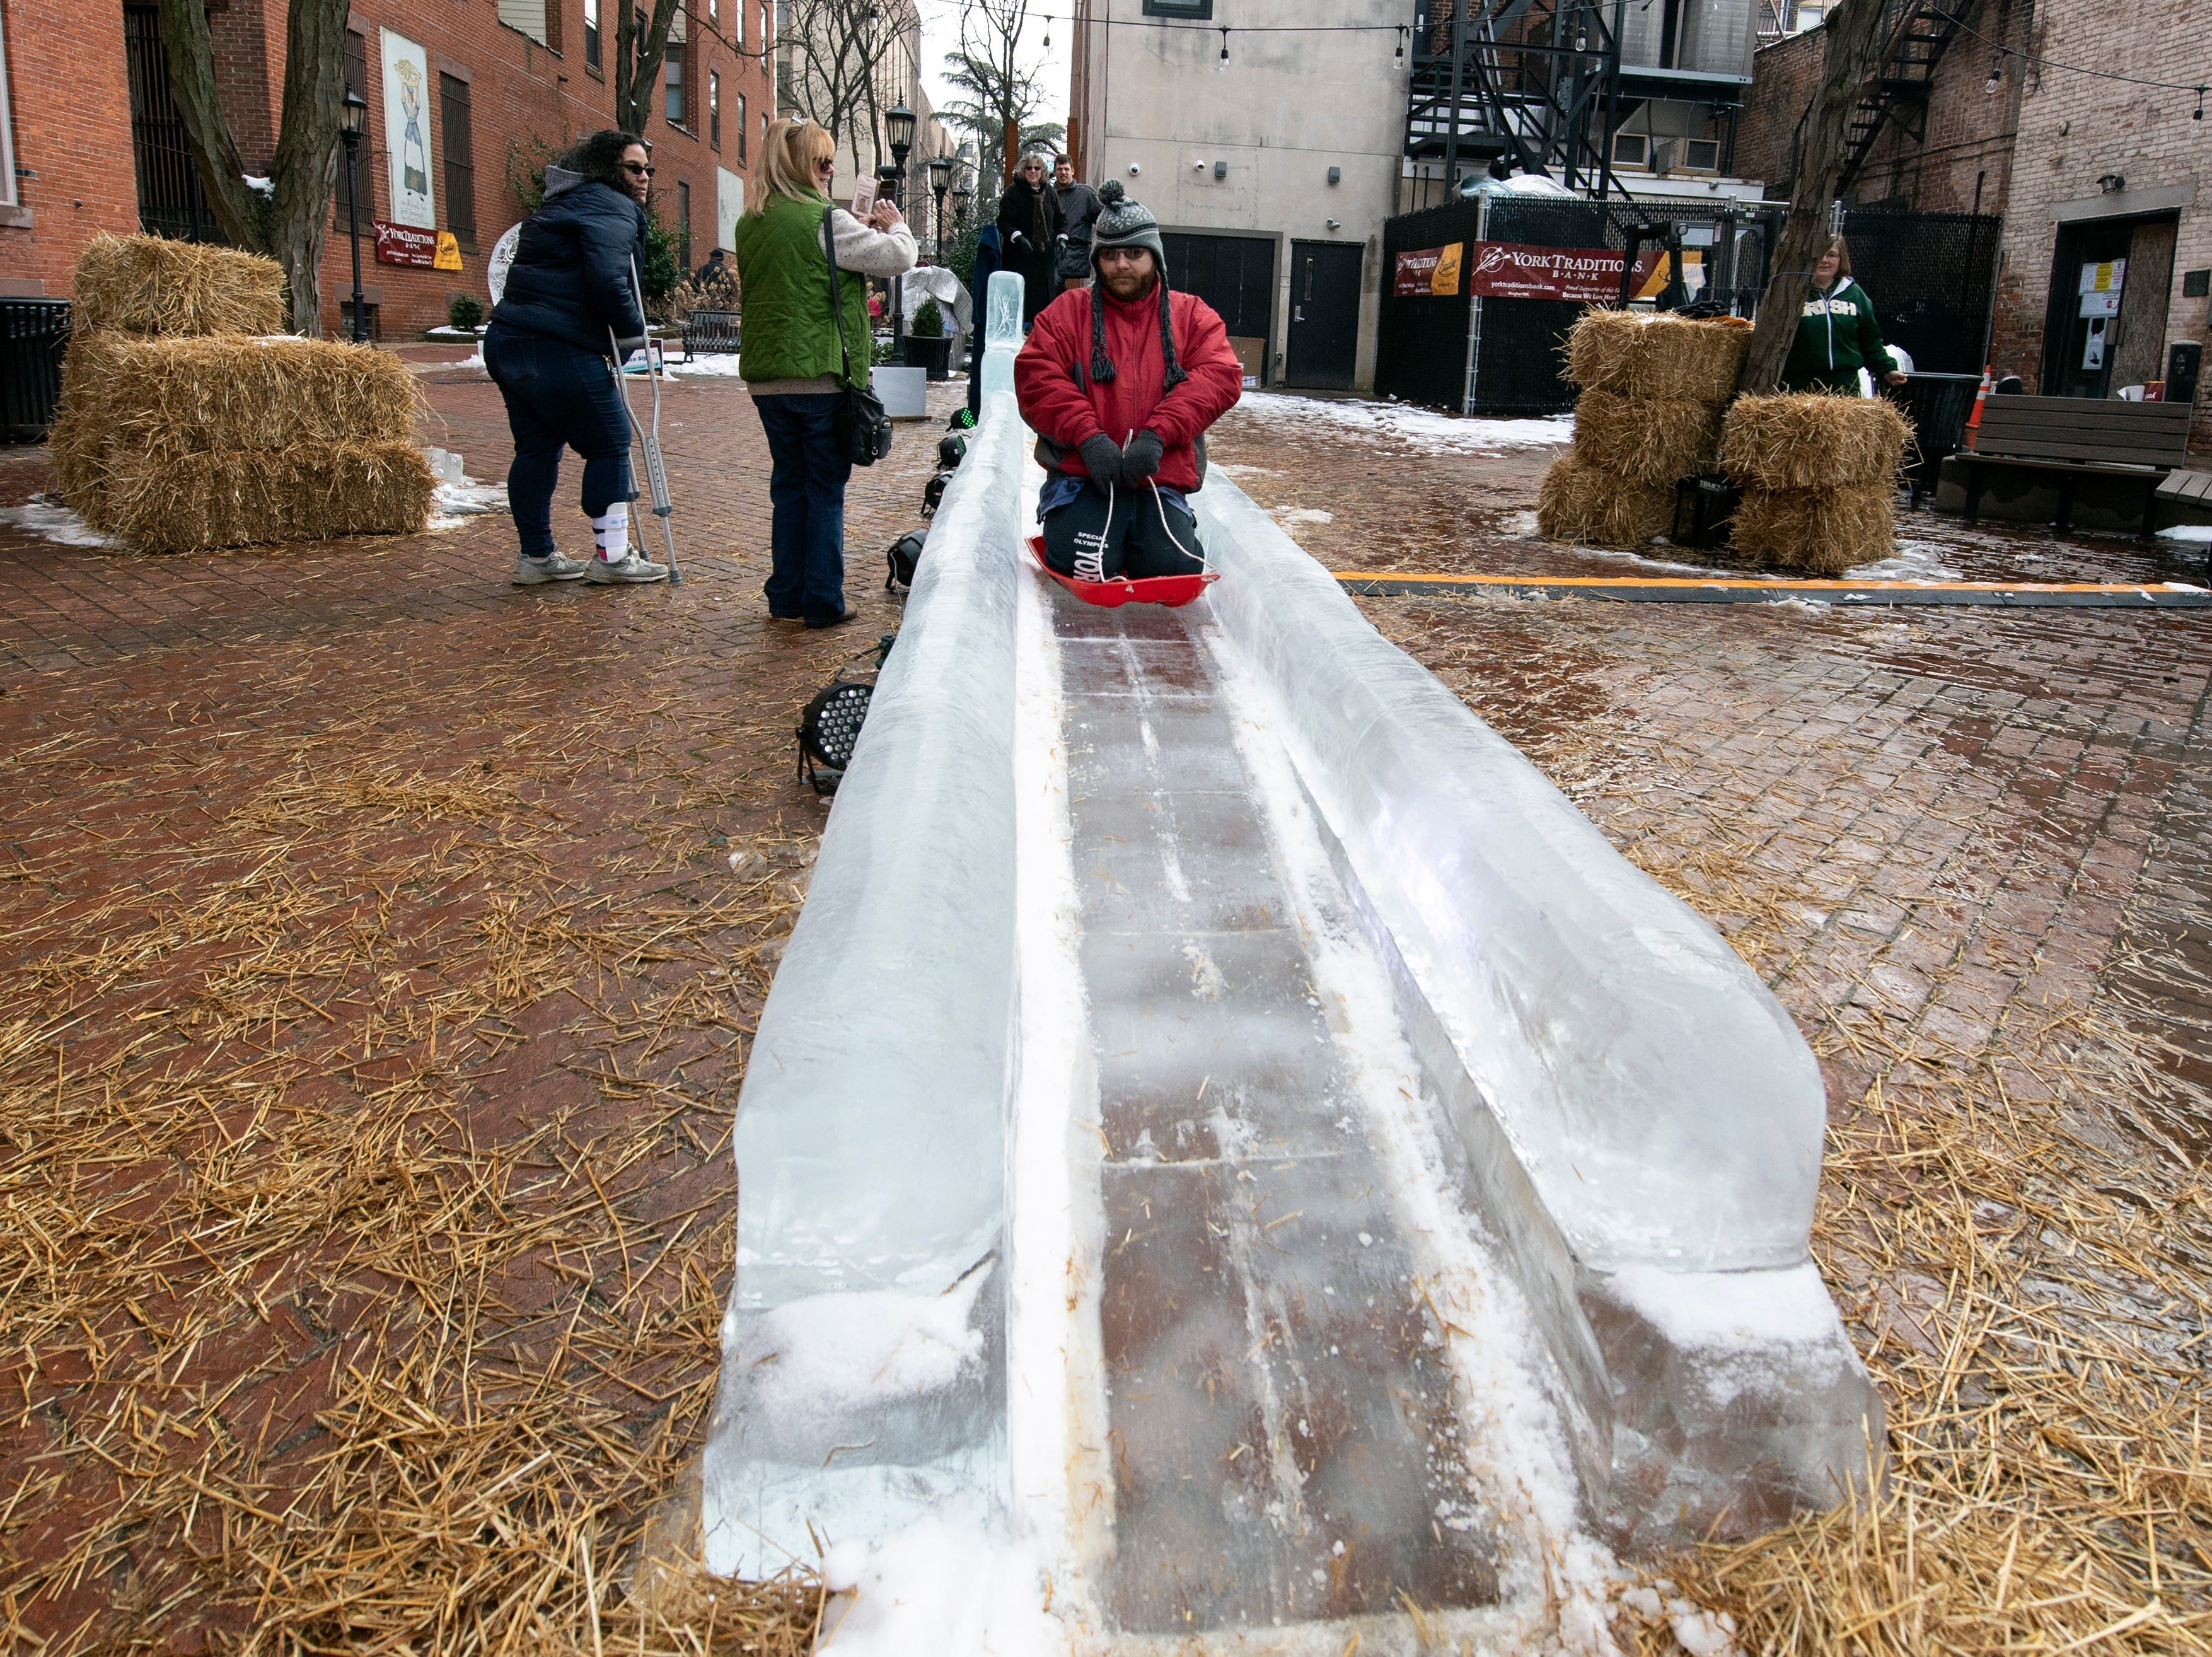 Dan Schultheiss rides a sled down the 40-foot ice slide in Cherry Lane, downtown, Friday, Jan. 18, 2019. The FestivICE ice festival has interactive ice sculptures, an ice slide and more. The three-day event ends Saturday.